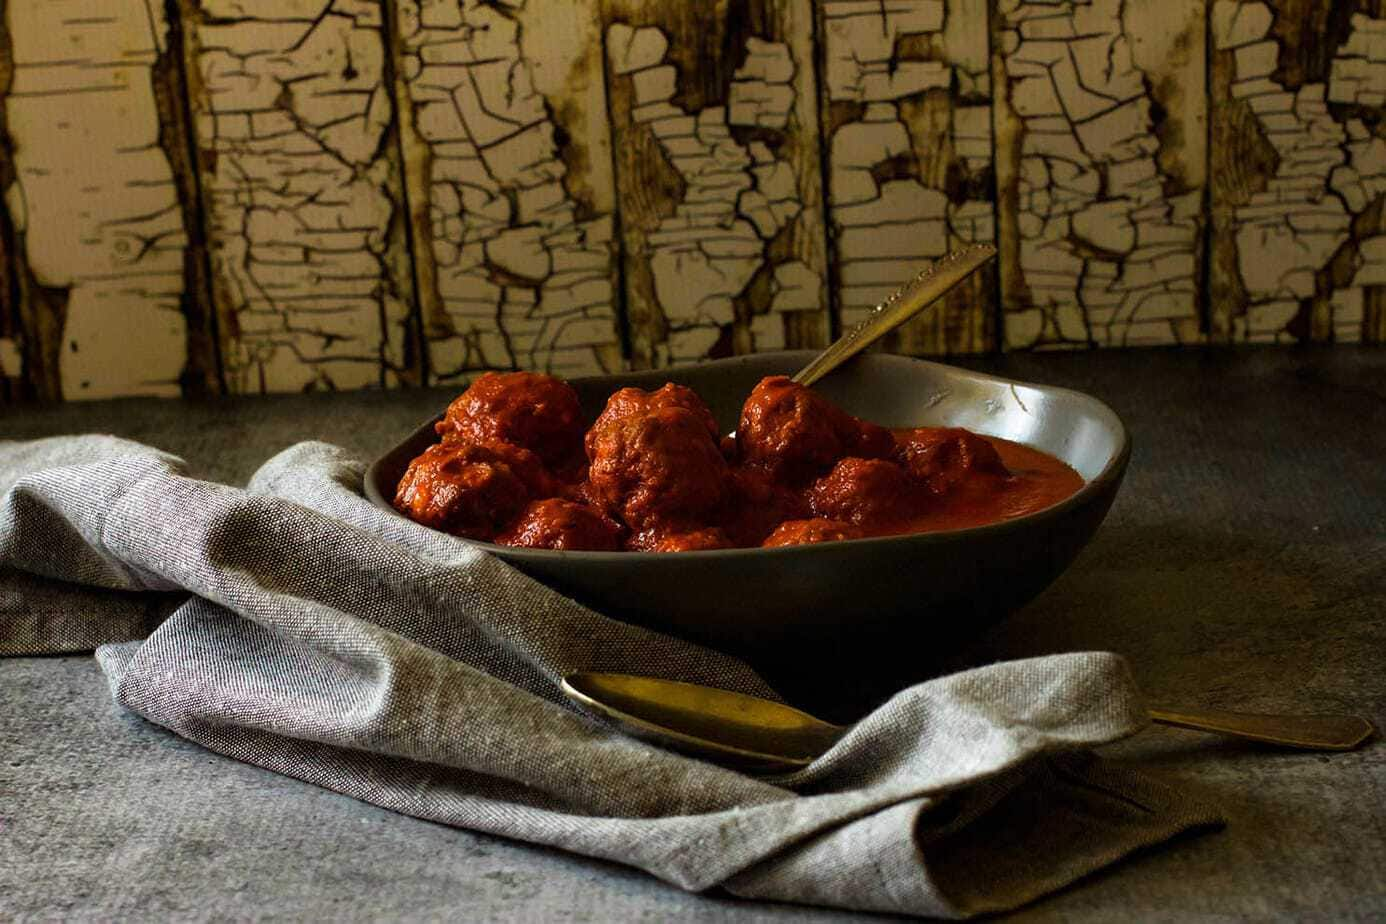 Lamb meatballs in bowl with tomato sauce